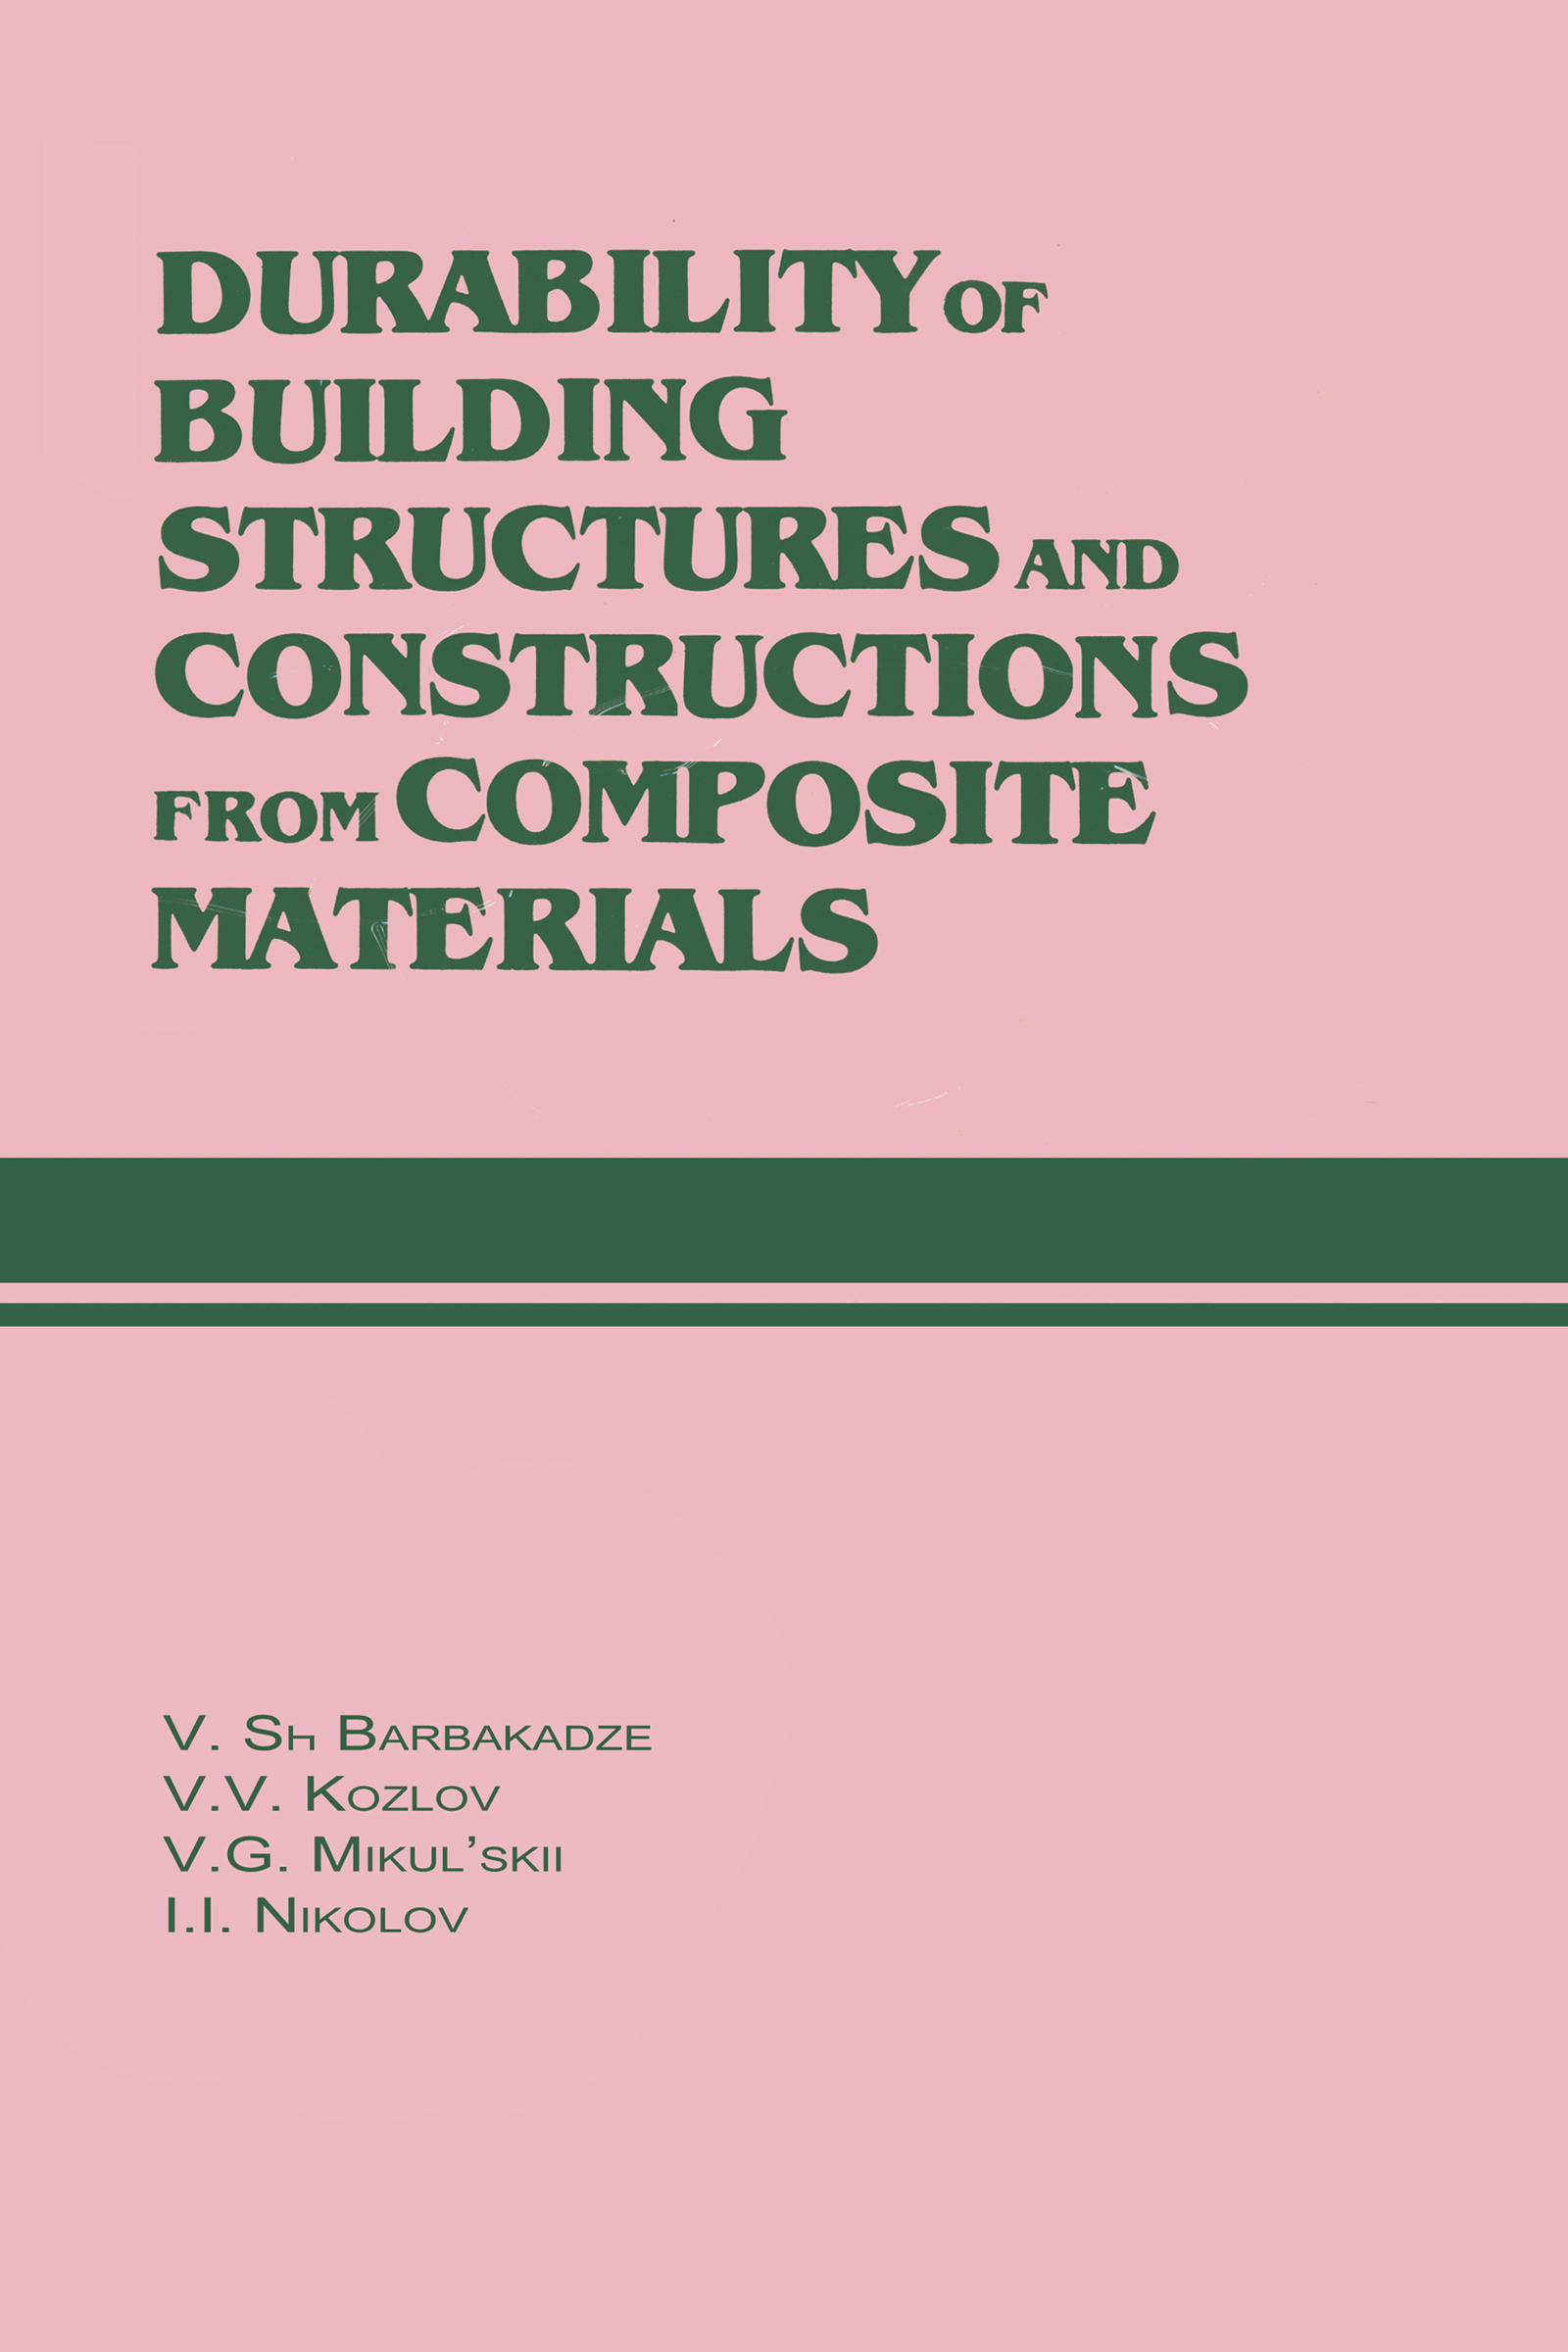 Durability of Building Structures and Constructions from Composite Materials